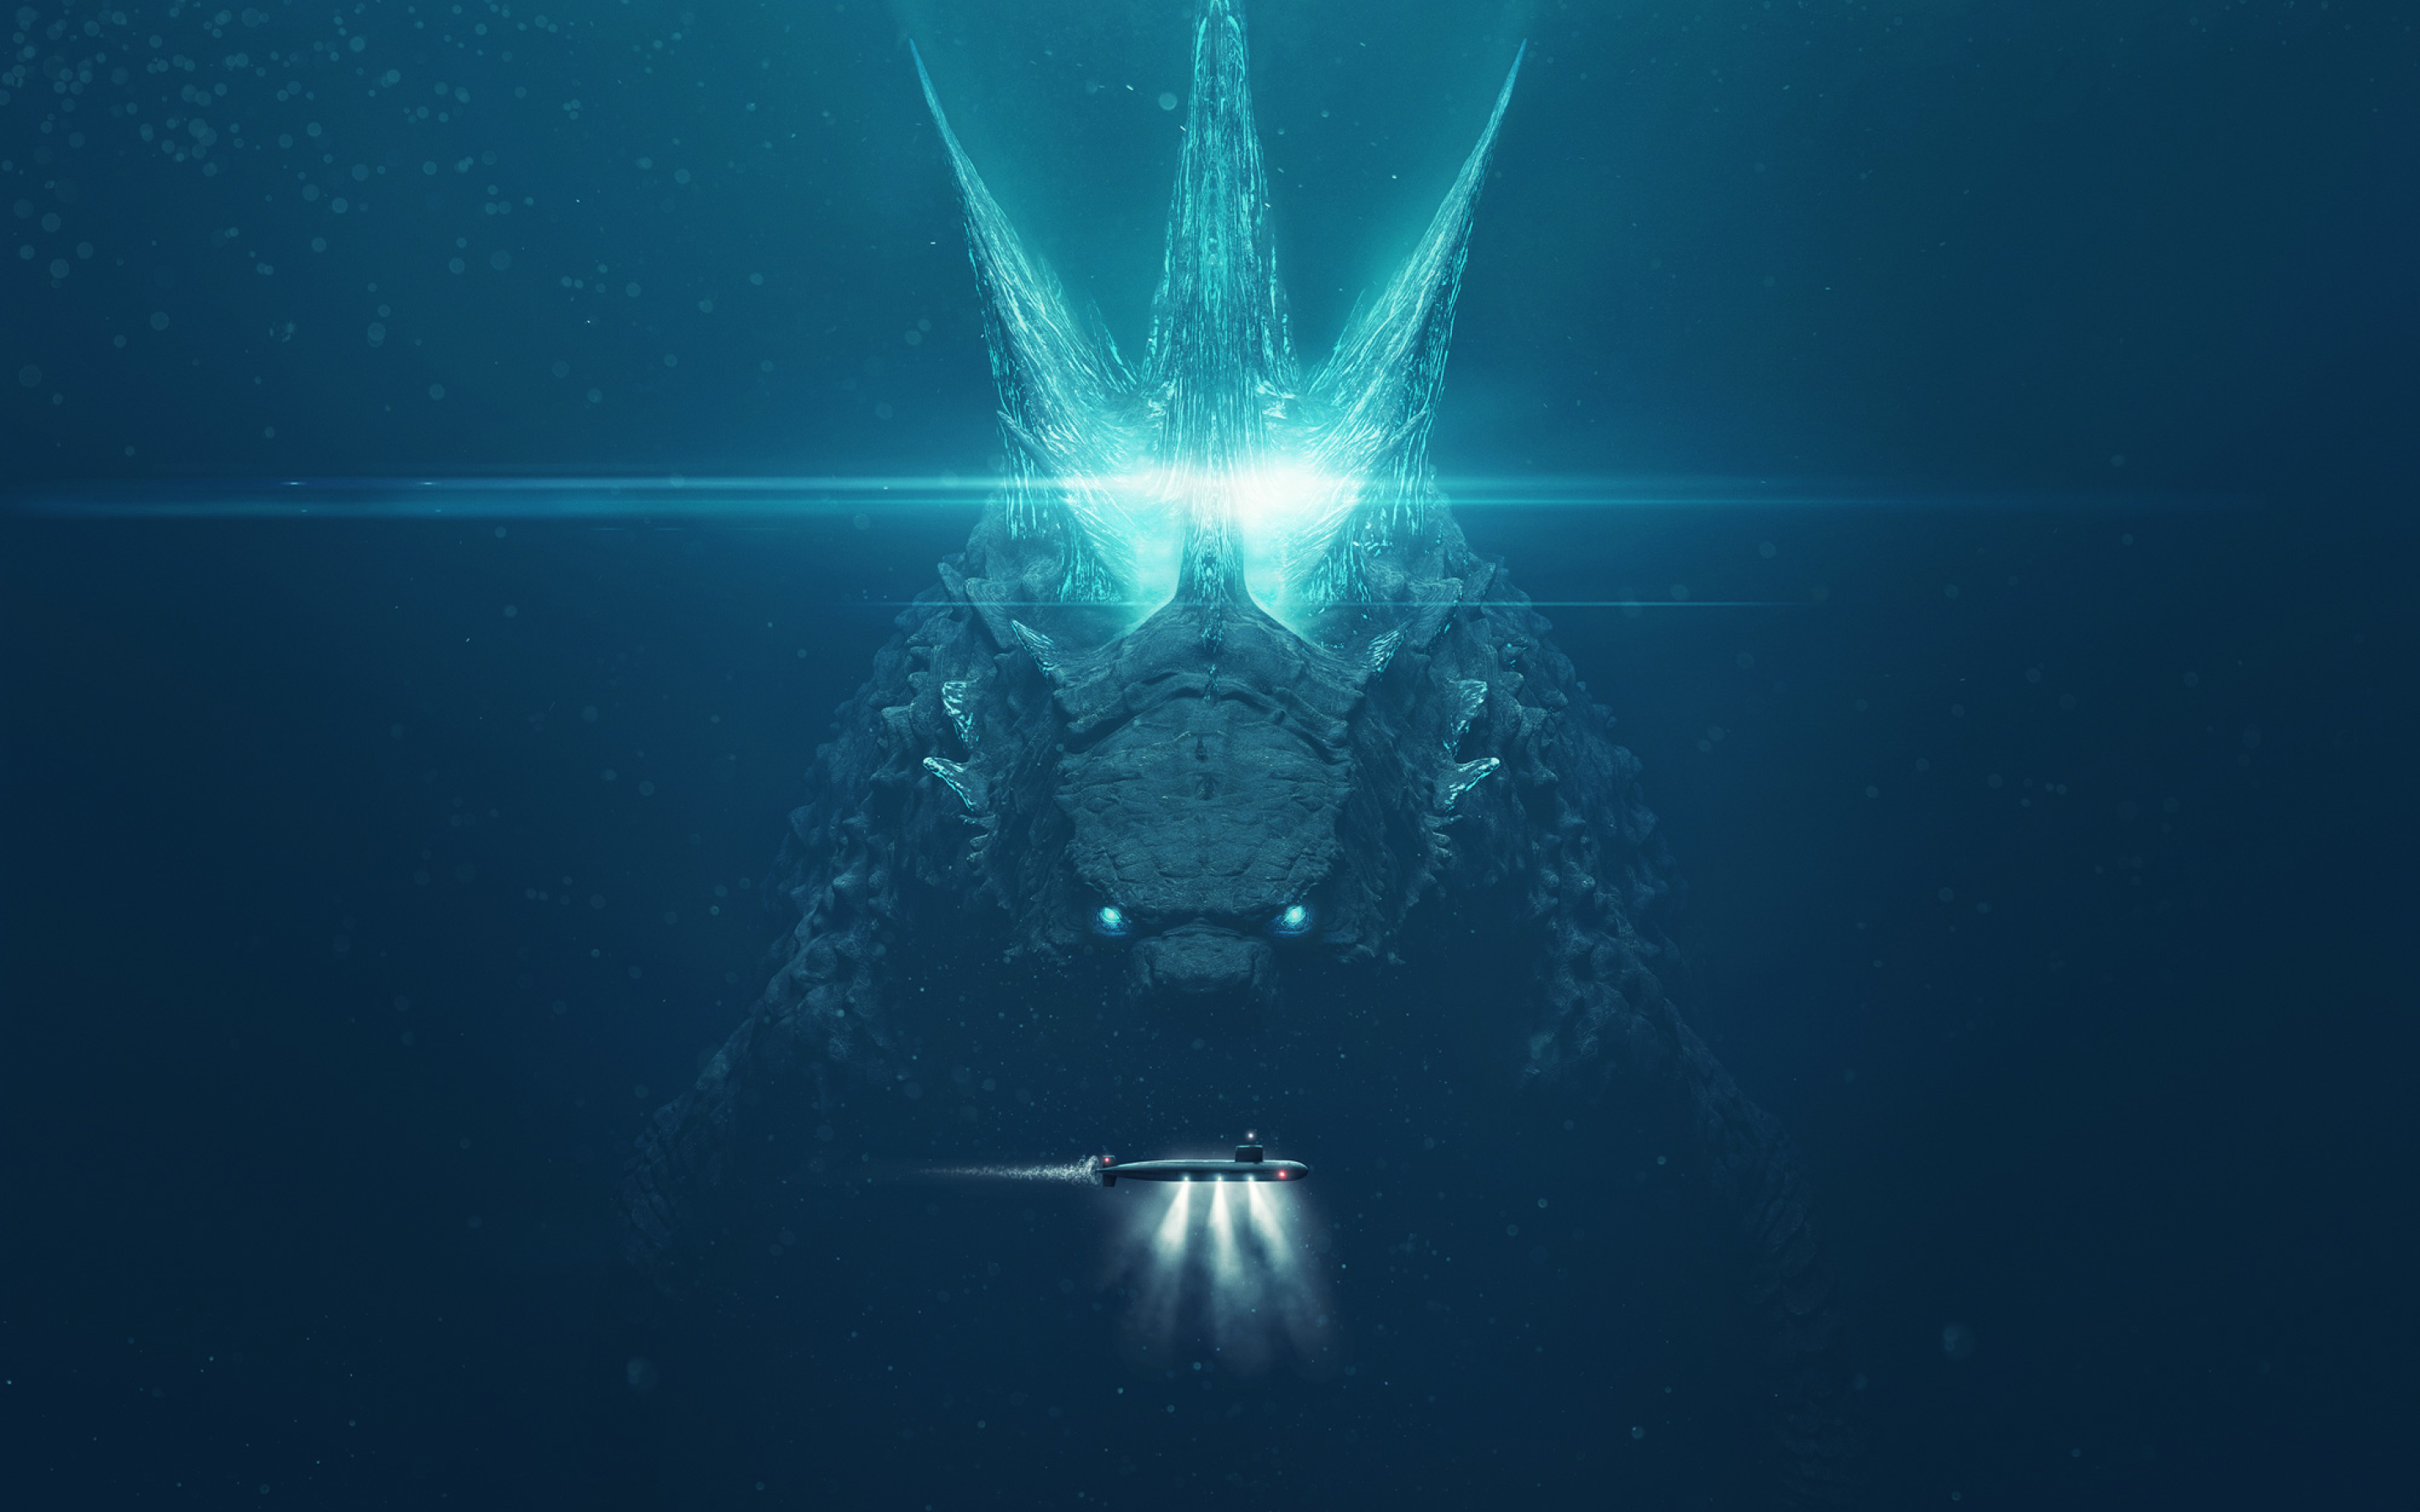 2880x1800 Godzilla King Of The Monsters 2019 Poster Macbook Pro